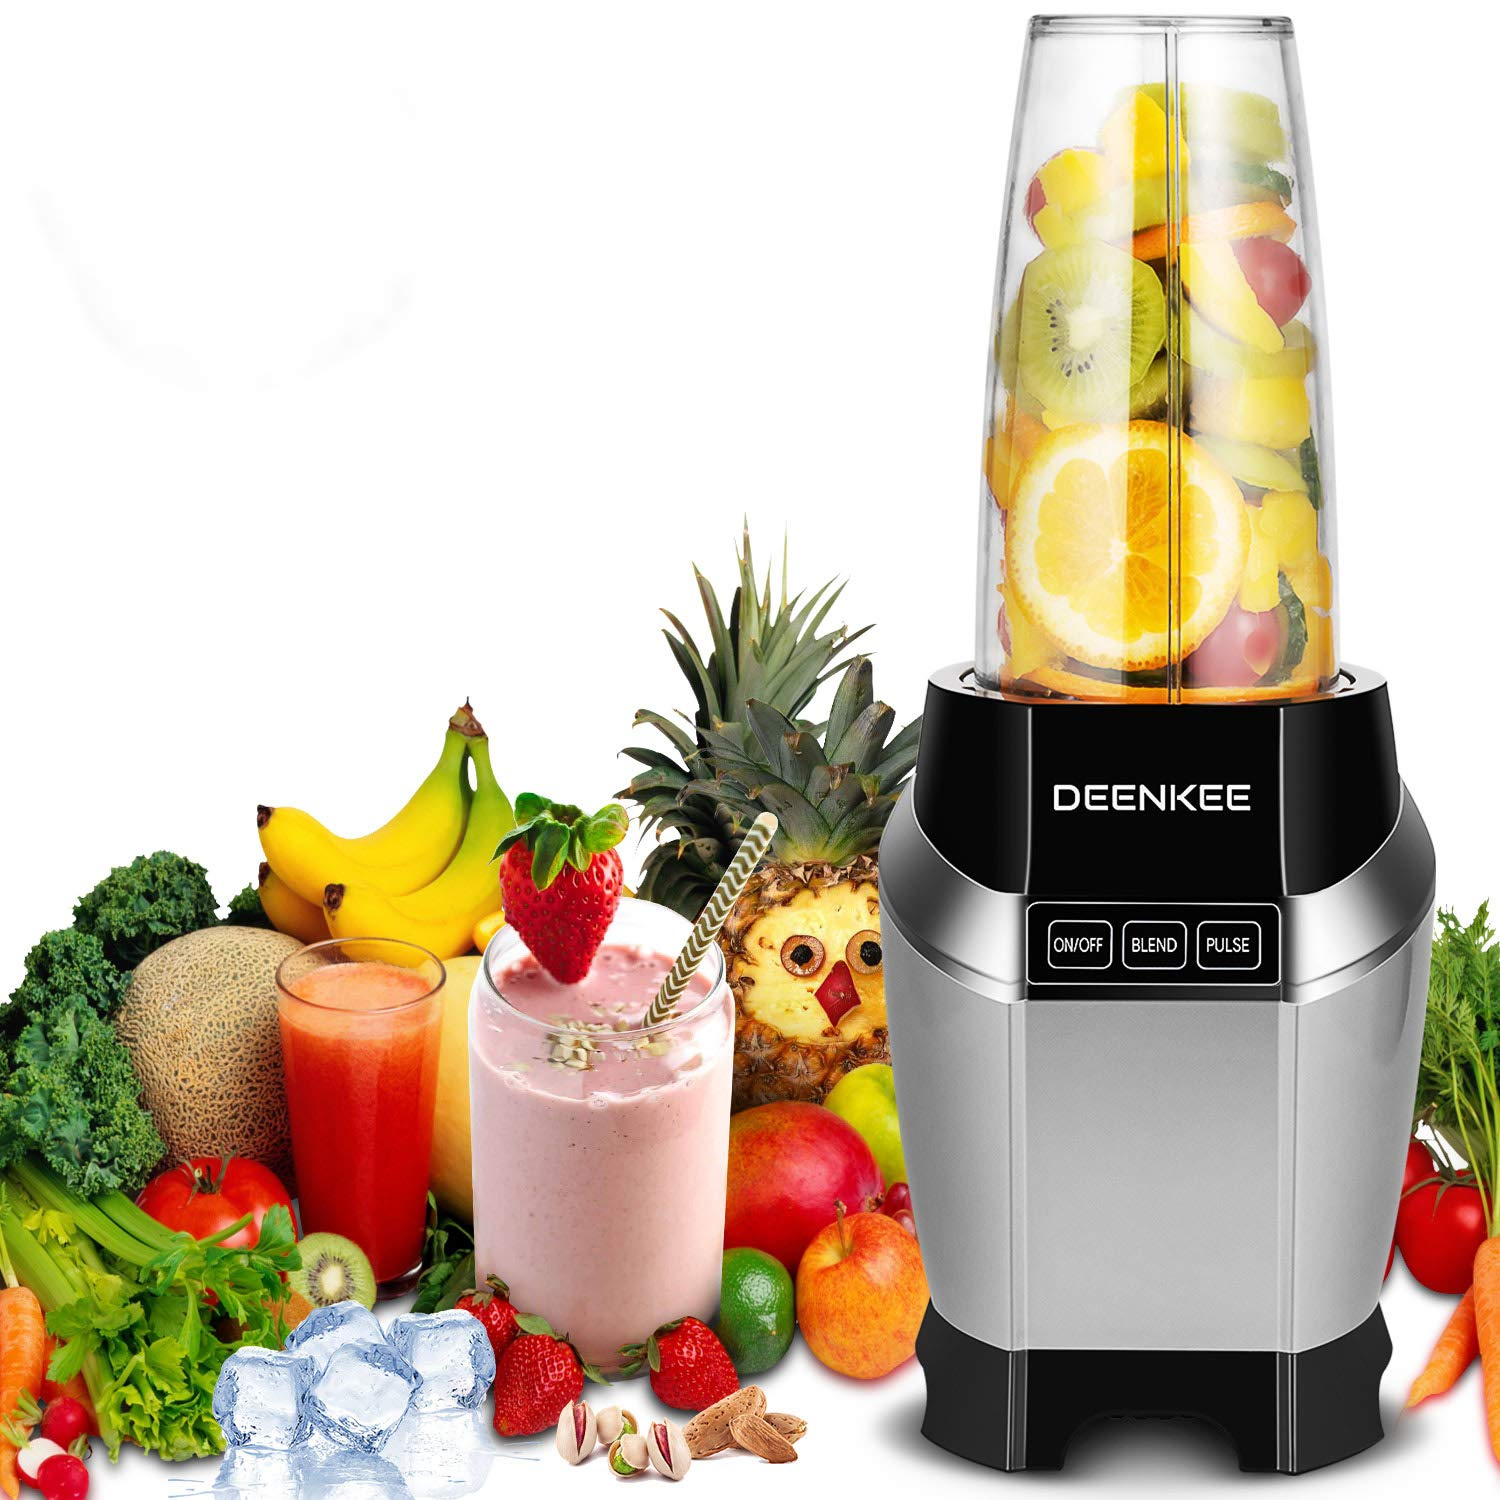 Blender, Smoothie Blender, Personal Blender, Blender For Shakes And Smoothies, Stainless Steel Juicer Blender Electric, Professional-Grade Power,High-Speed Blender For Baby Food With 1000W, BPA Free,FDA, Recipes Including